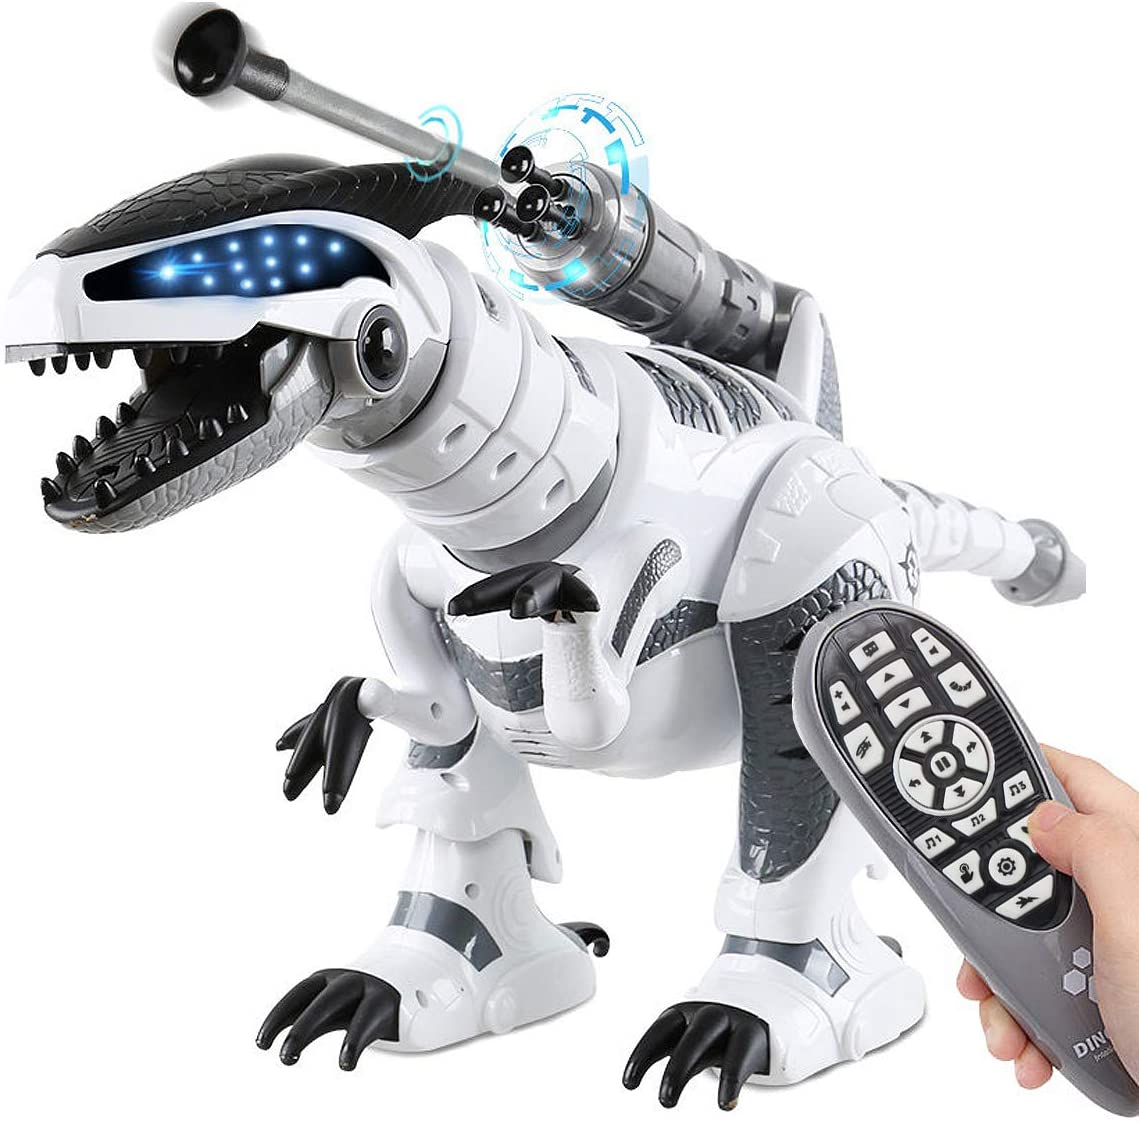 Top 8 Best Dragon Toys for Kids (2020 Reviews & Buying Guide) 8